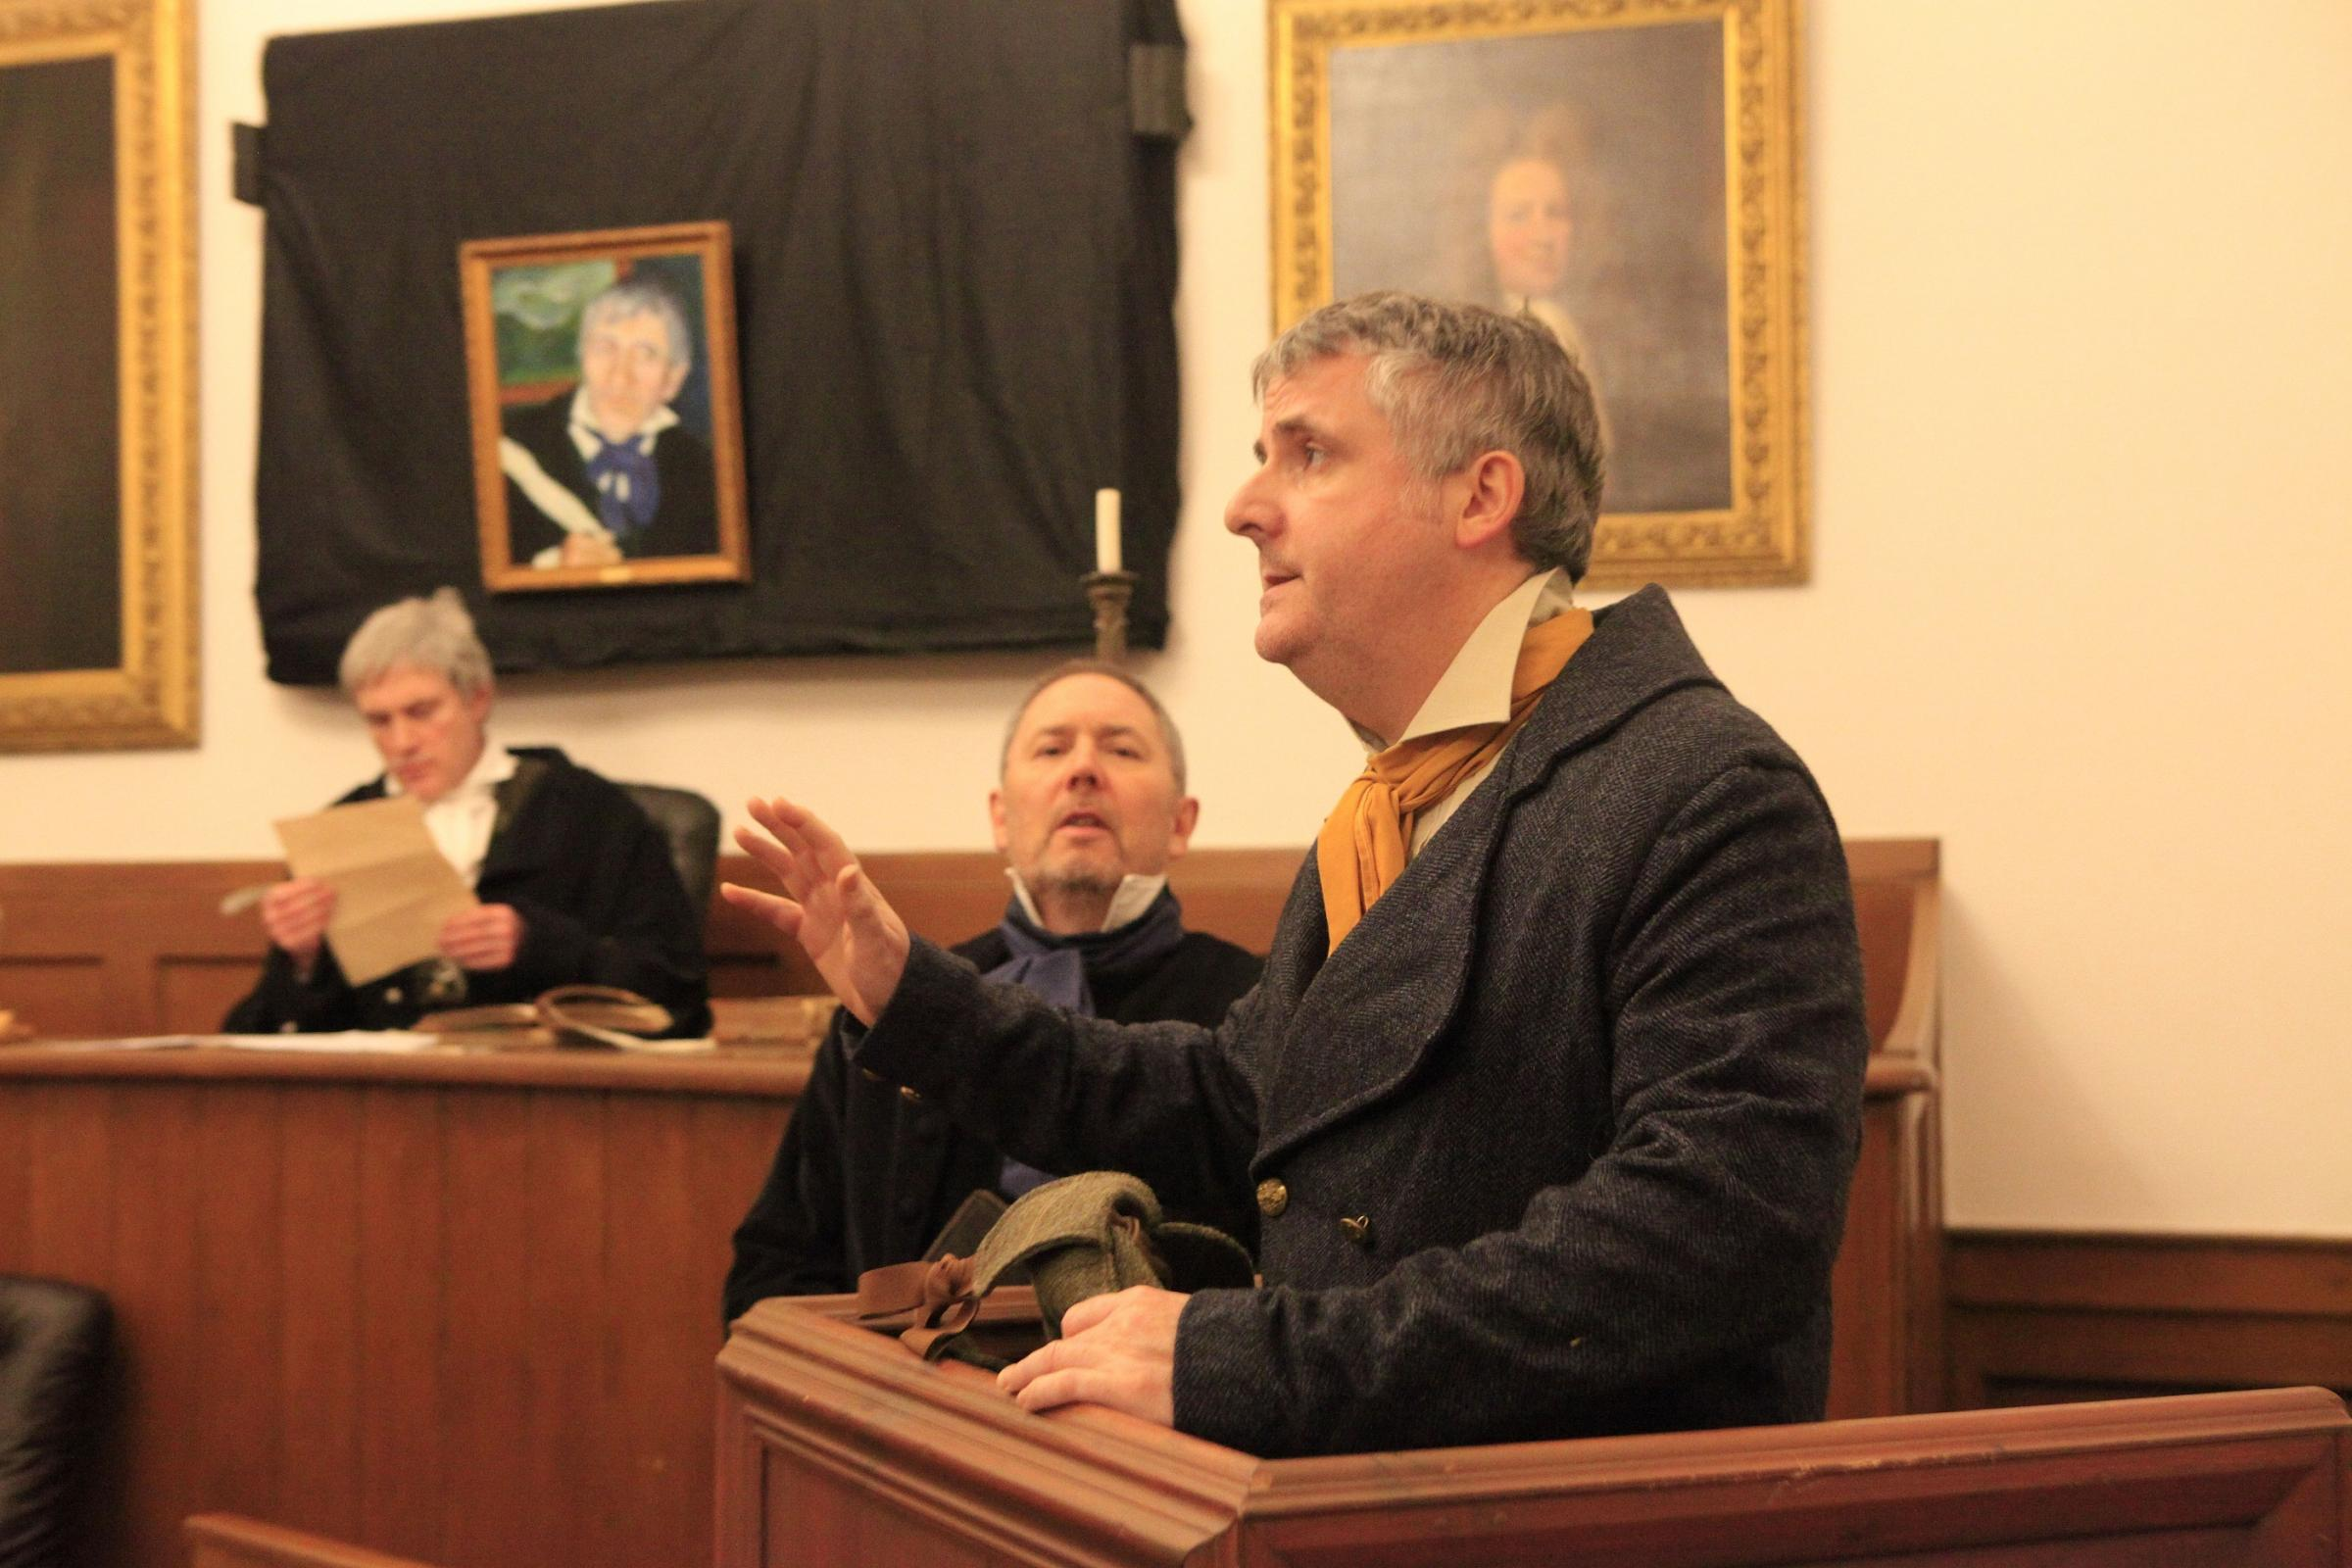 The ever popular trials in Sir Walter Scott's Courtroom